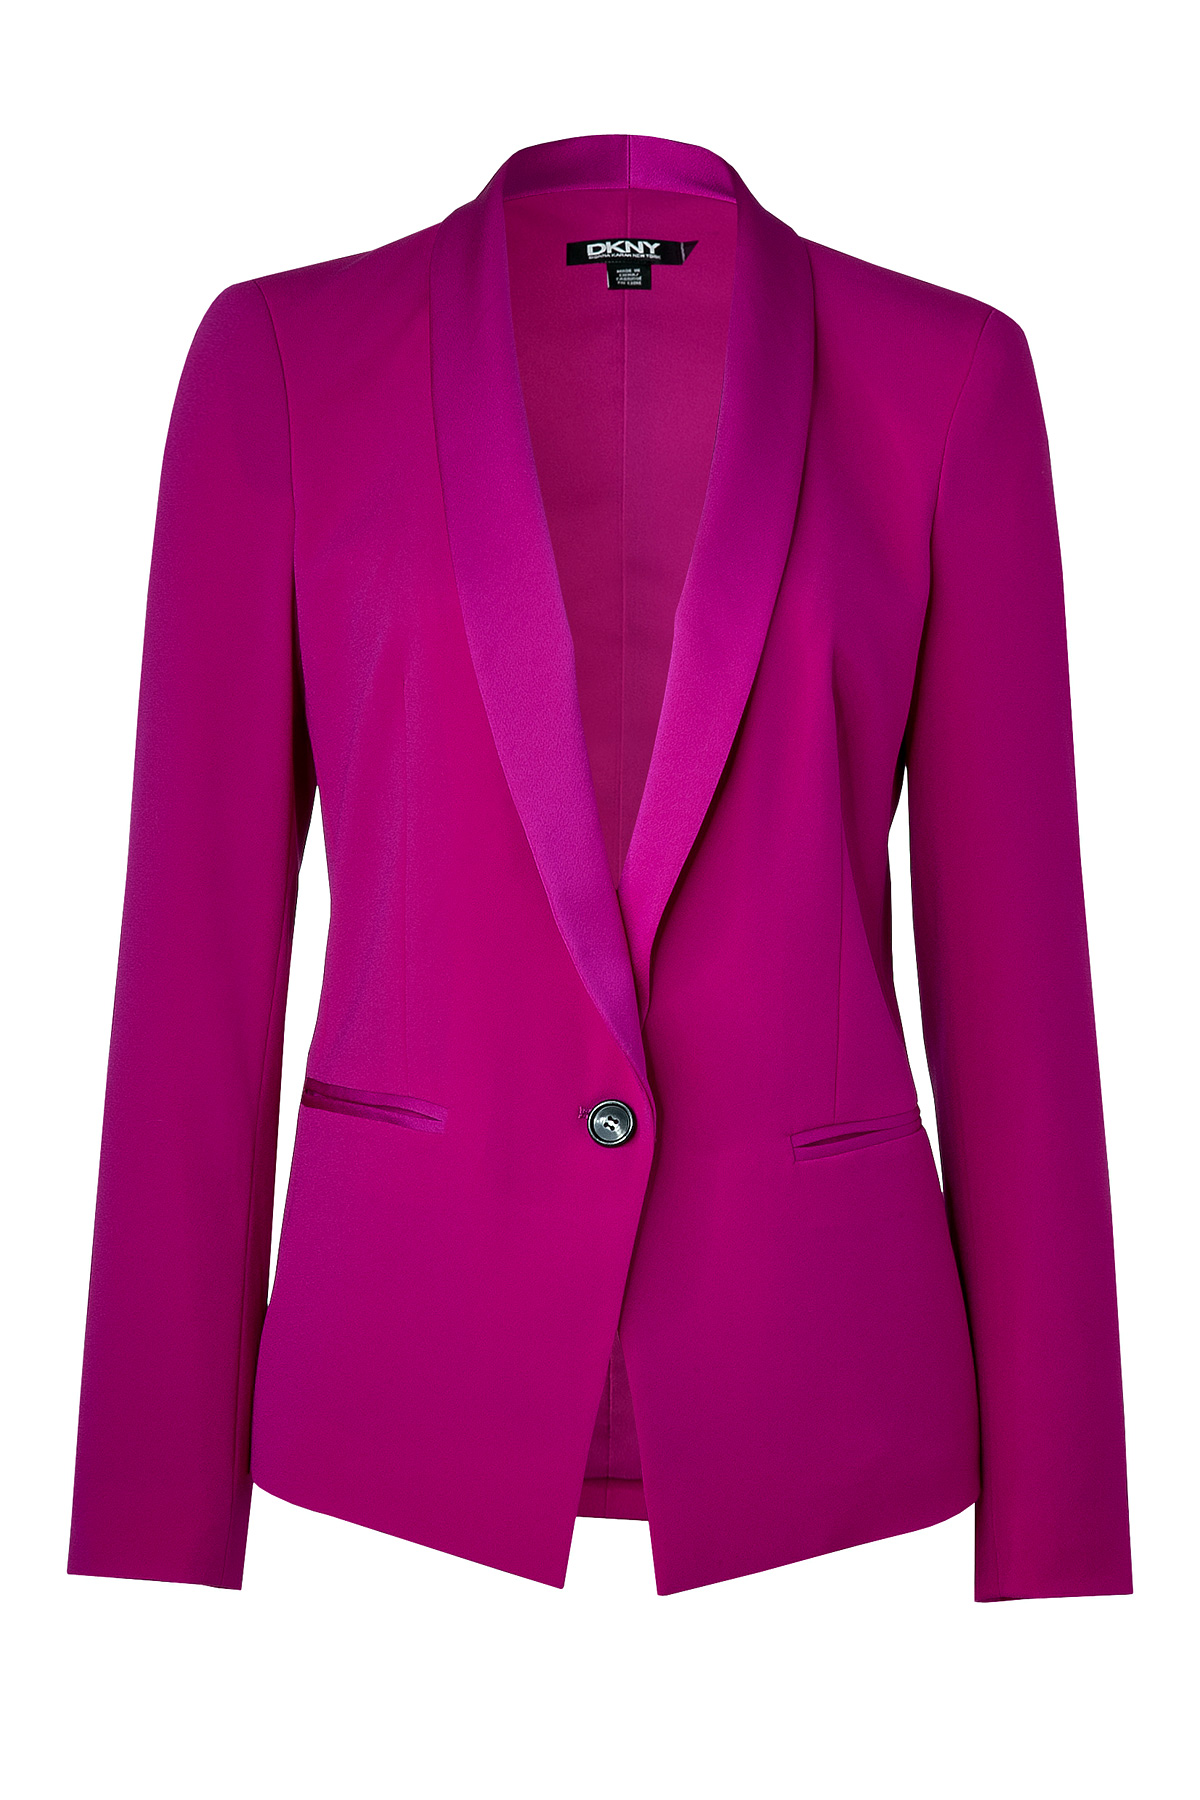 iPhone designer iphone cases : Dkny Jazzberrymagenta Tuxedo Blazer in Purple : Lyst